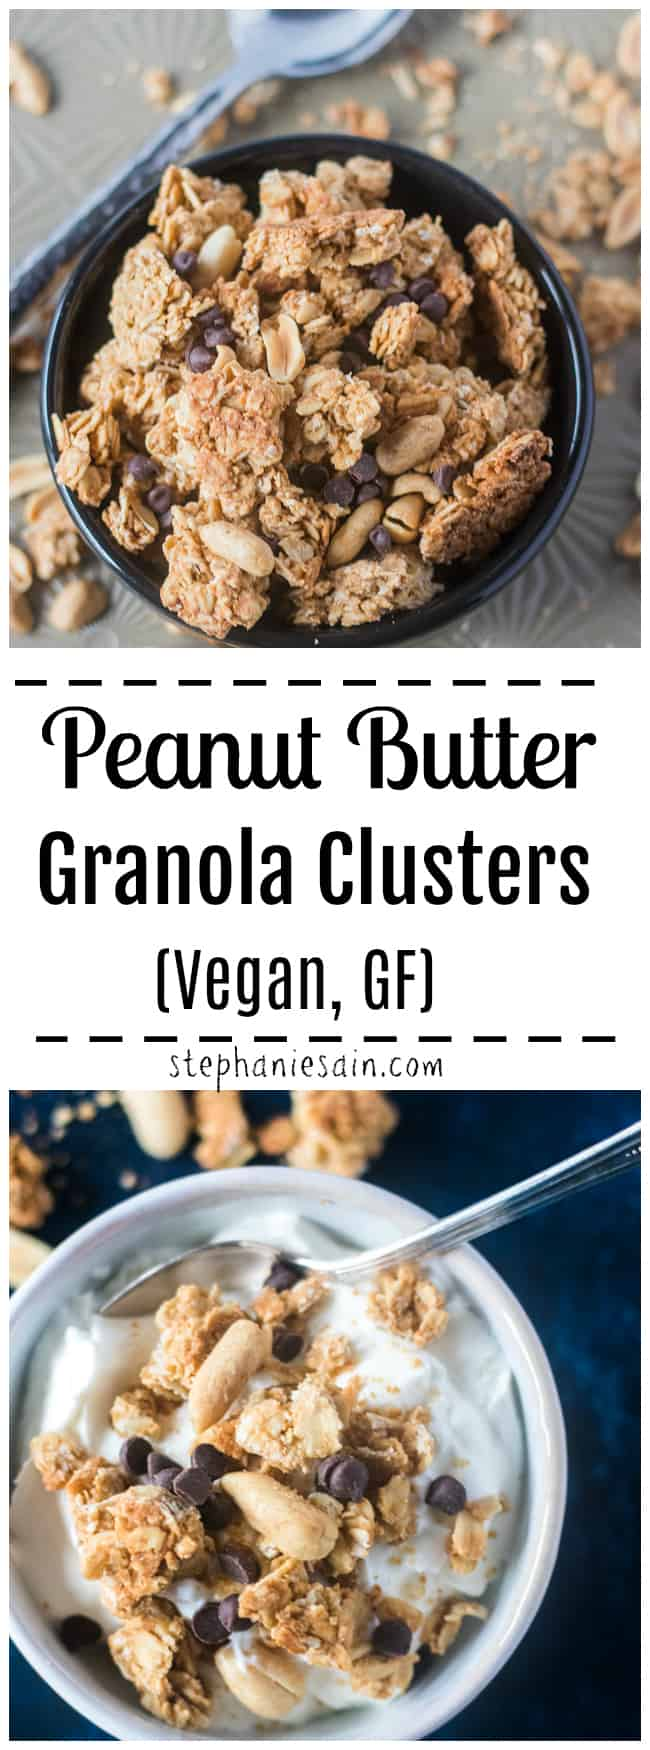 These Peanut Butter Granola Clusters require only five easy to find ingredients. Perfect for an easy, tasty grab and go breakfast or snack. Great also topped on yogurt or served with fresh fruit. Healthy and full of lots of stay with you nutrients. No refined sugar, Gluten Free, & Vegan.